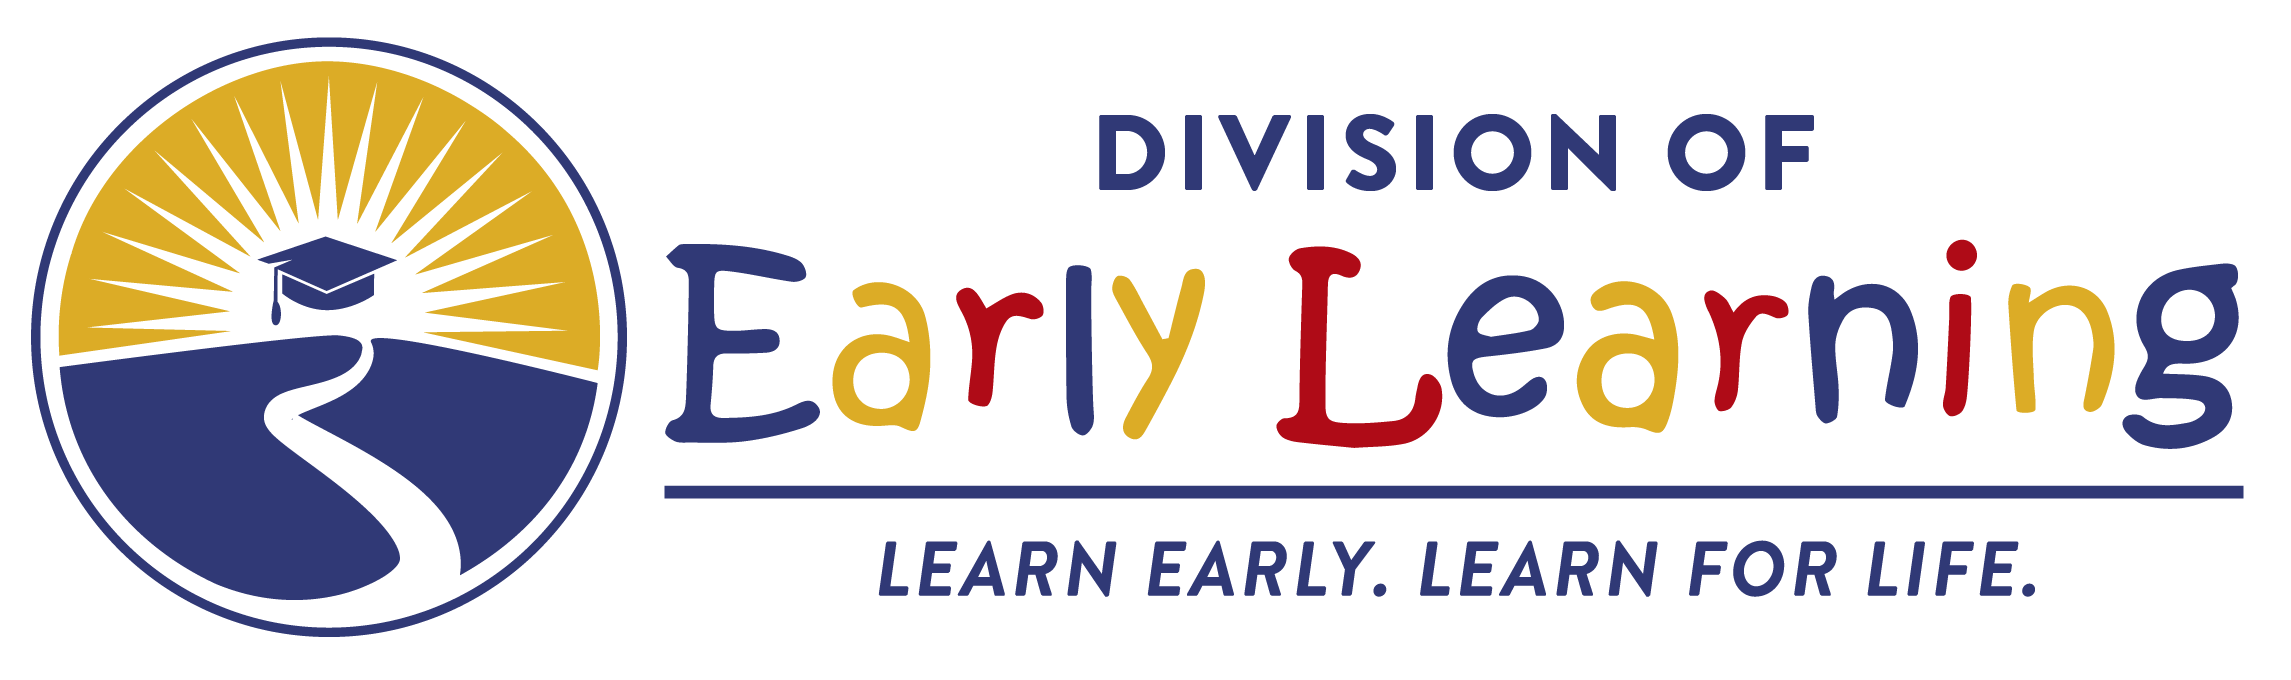 Florida Division of Early Learning